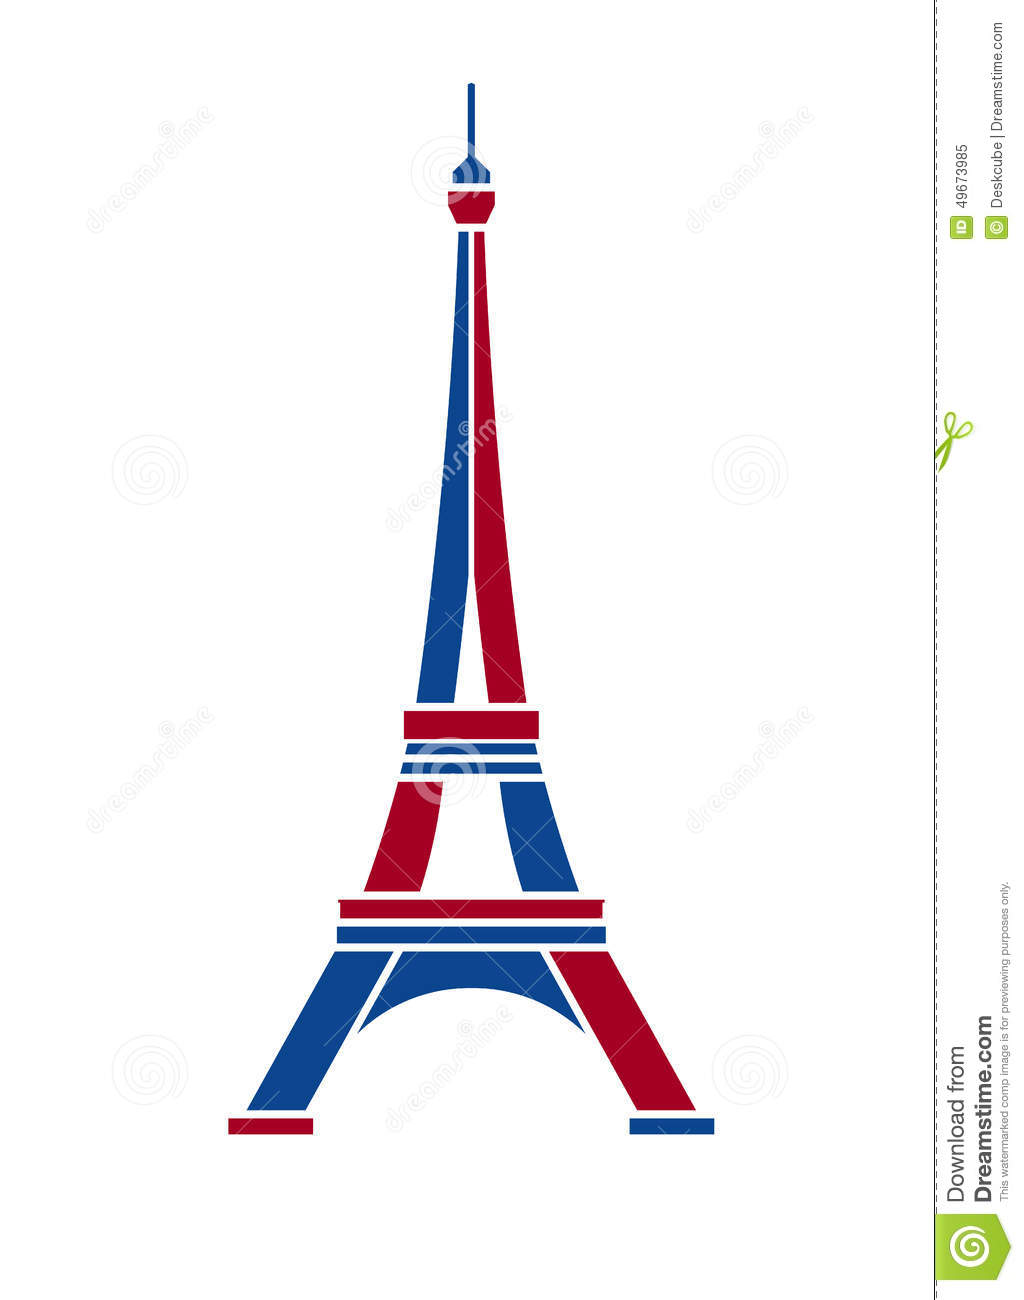 Eiffel tower logo in red and blue paris stock vector for Color design paris